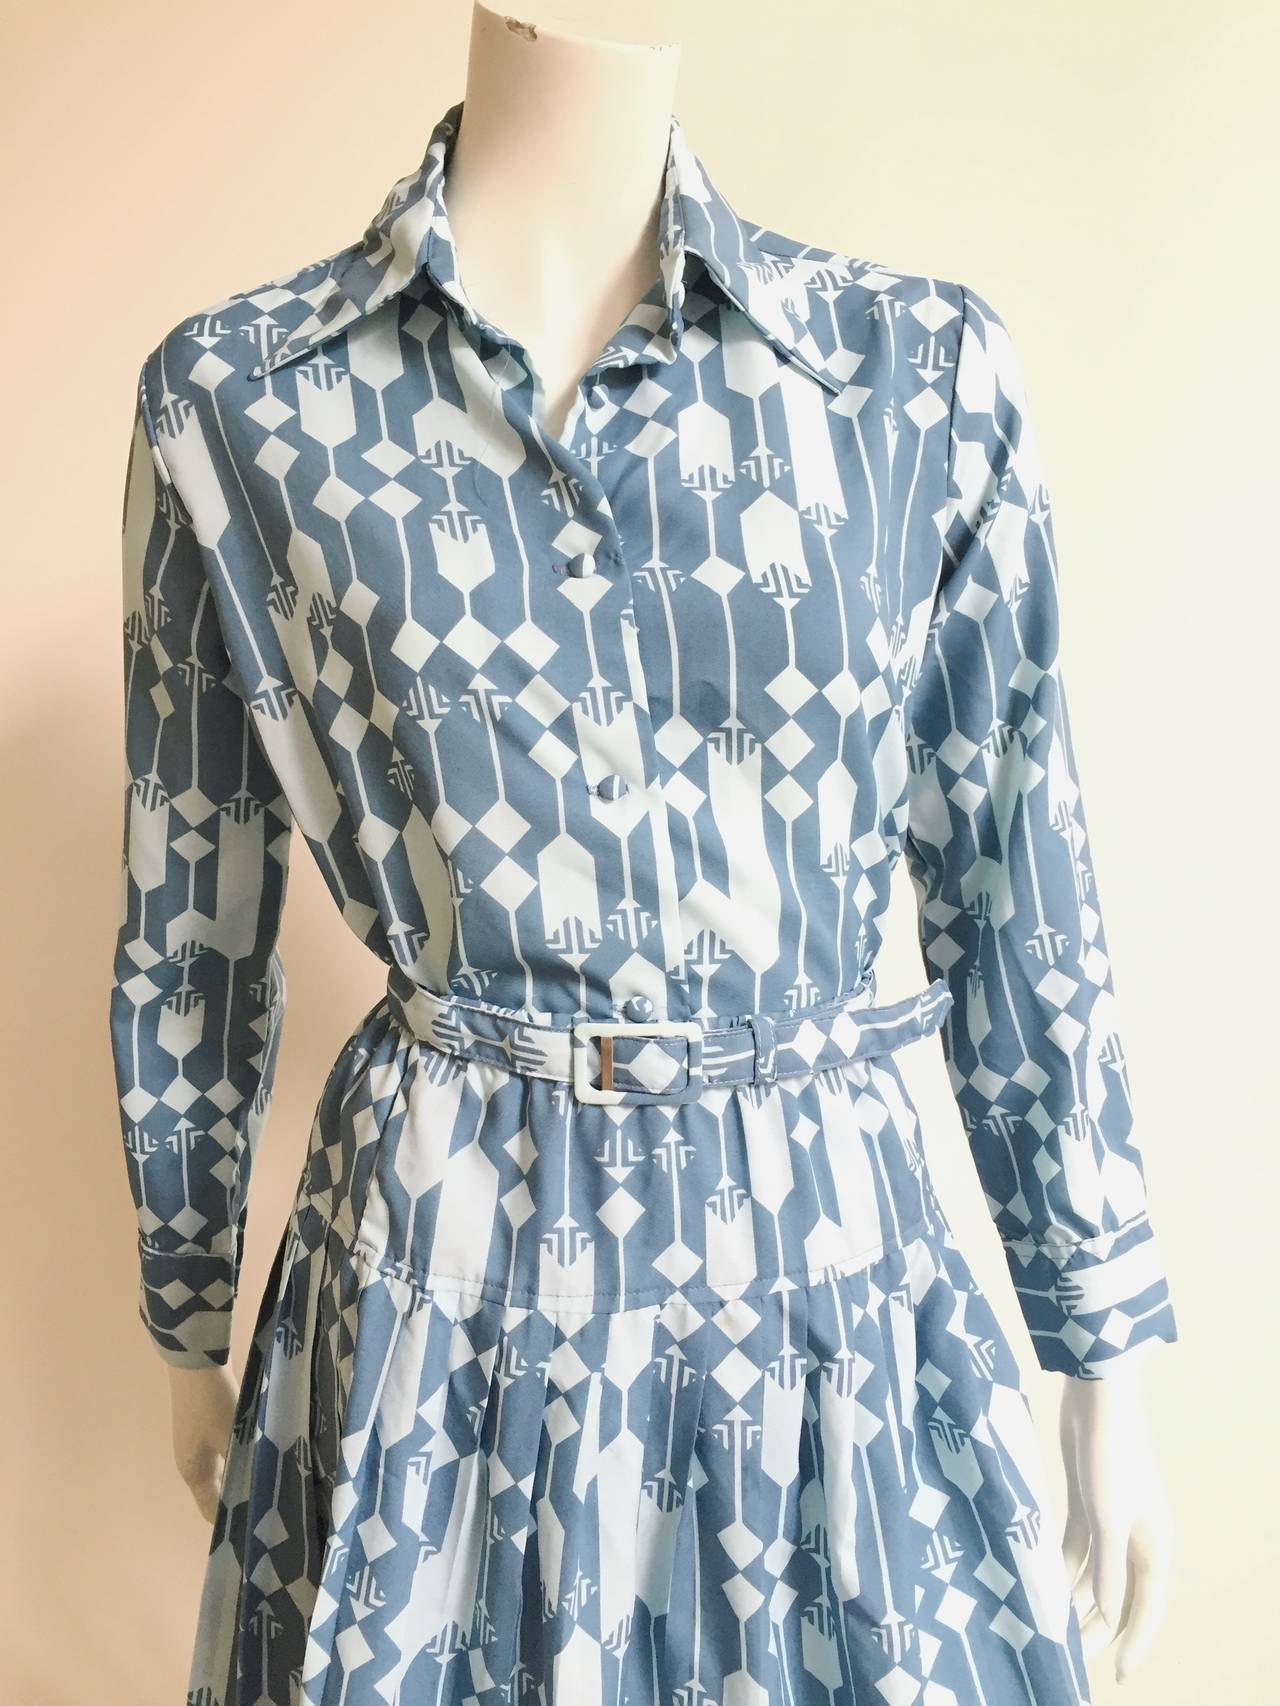 Lanvin 1970s 3-piece set; blouse, skirt & belt with Lanvin logo will fit a USA size 8.  Please see & use measurements I provide so that you know for sure it fits you to perfection. Fabric covered buttons. Skirt has elastic waistband. Skirt